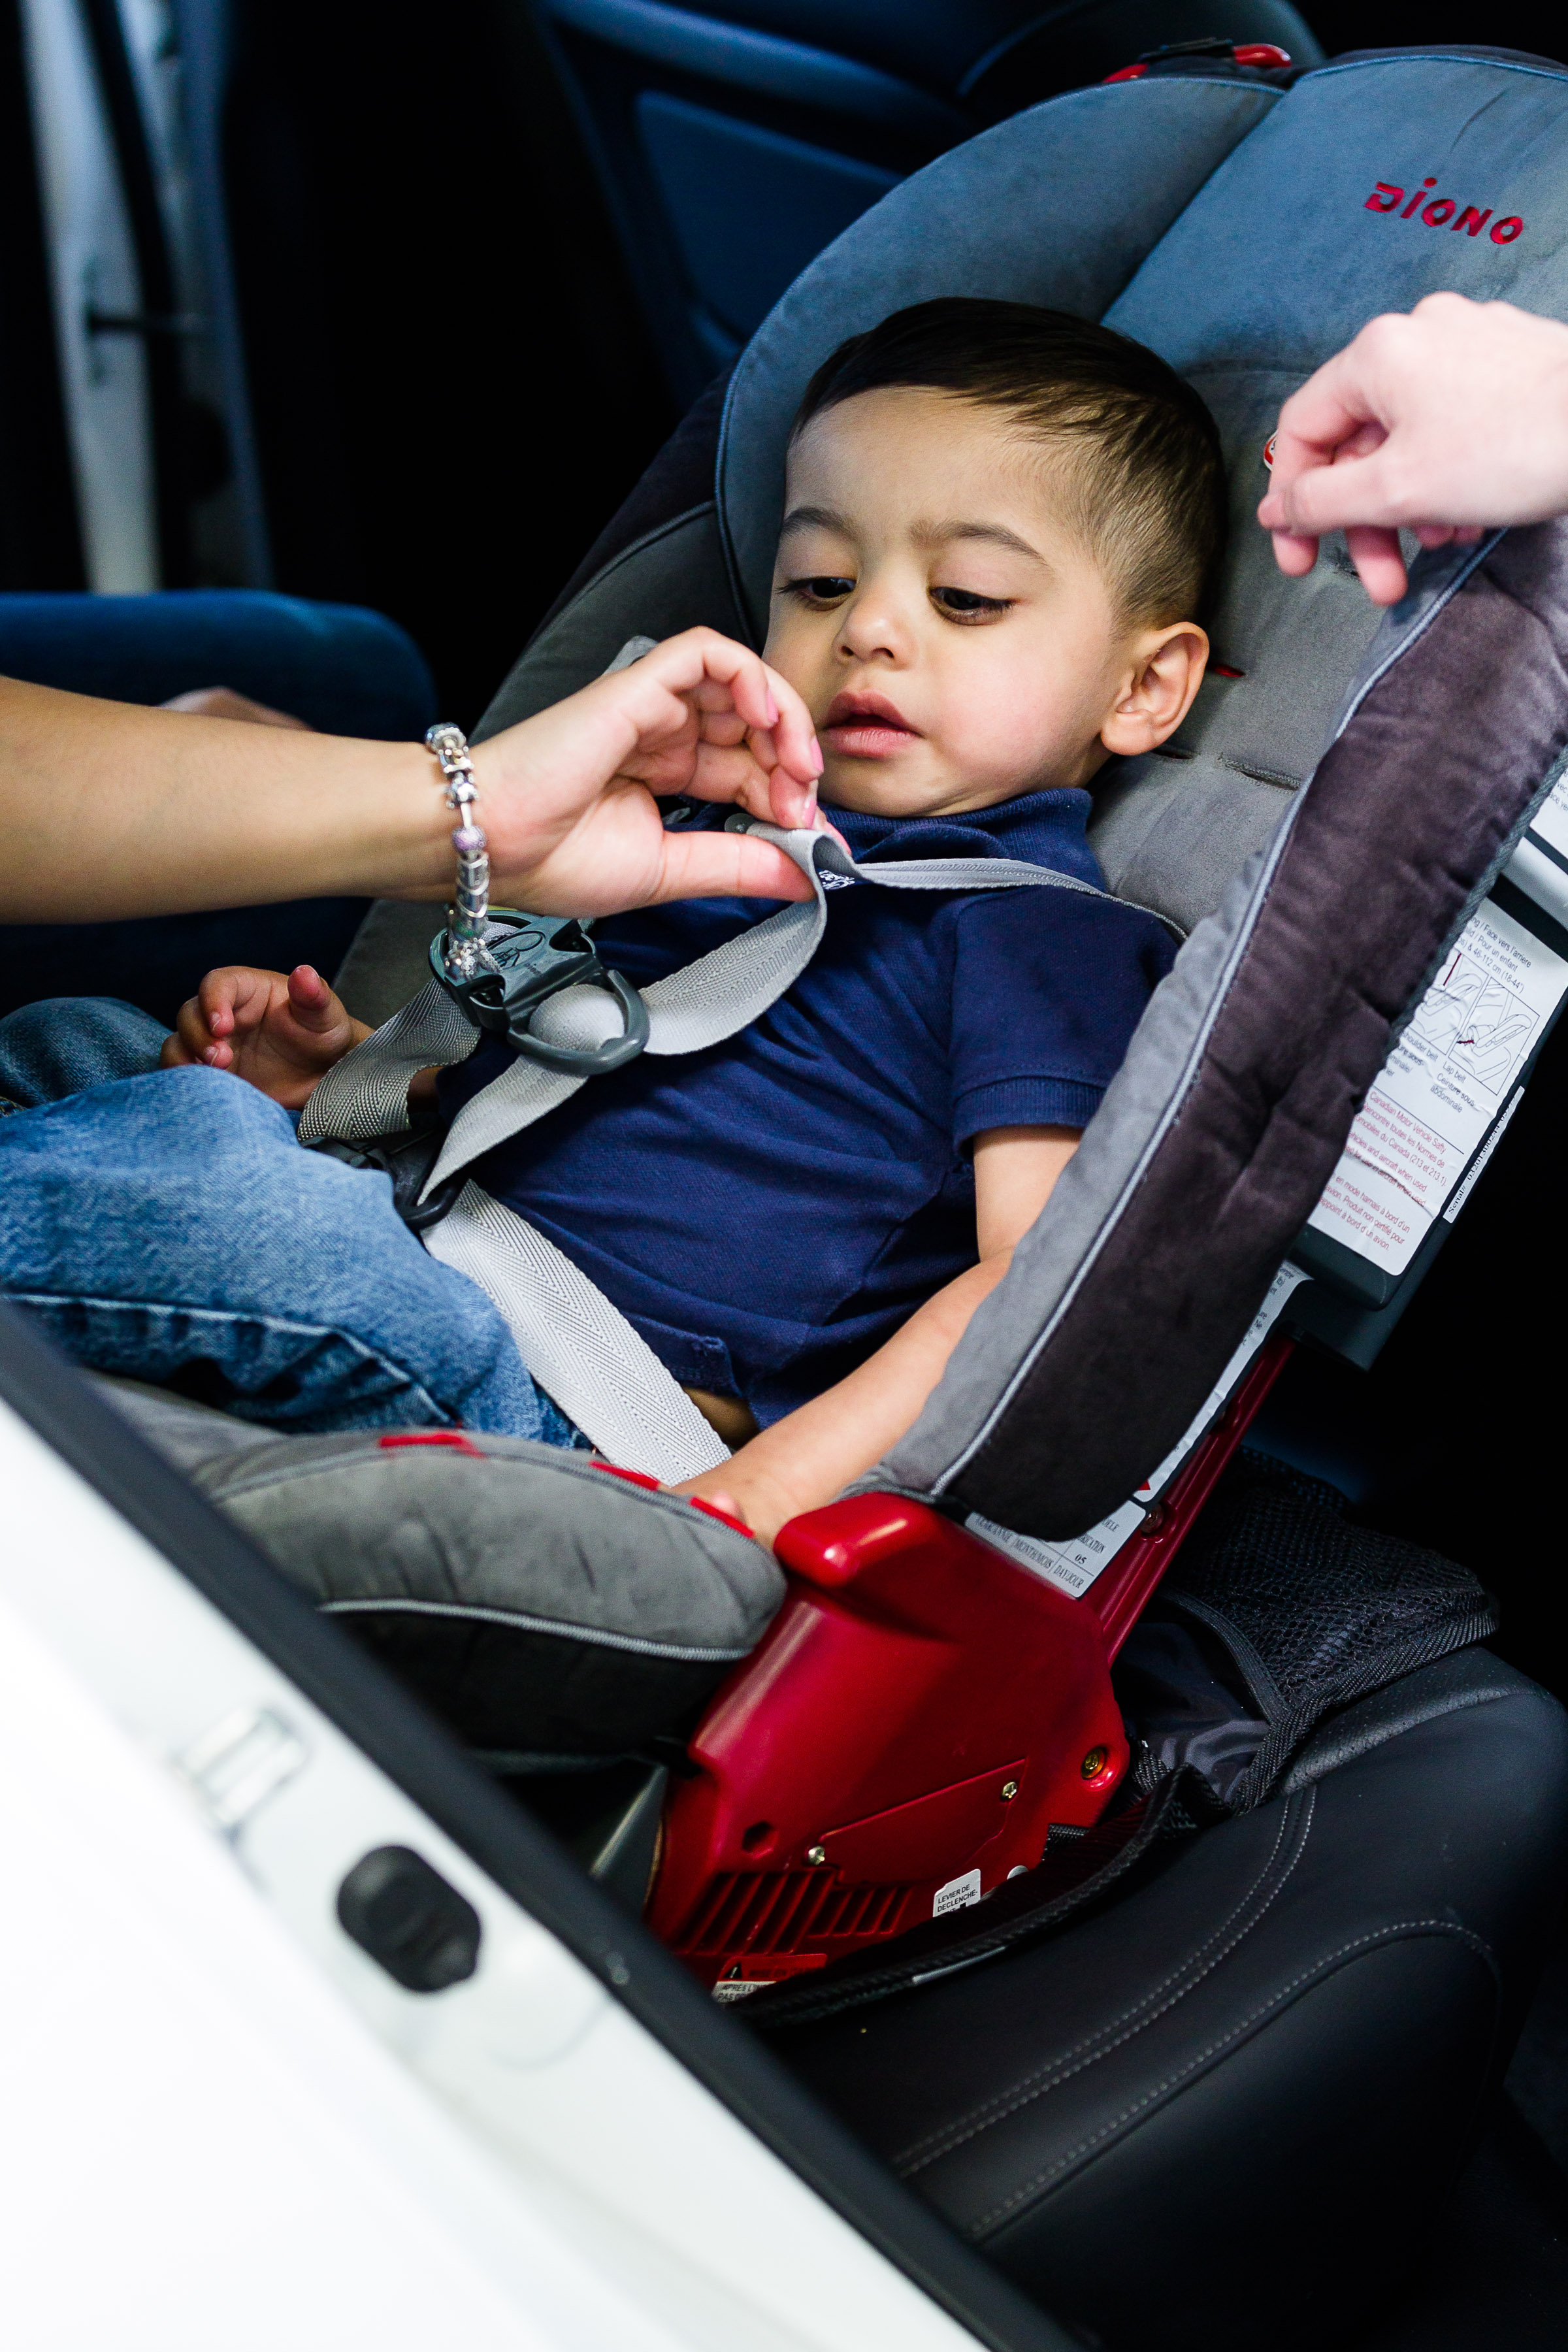 Families Can Visit Selected Chevrolet Dealerships In Toronto And Vancouver By Appointment To Learn How Properly Install Their Childs Car Seat No